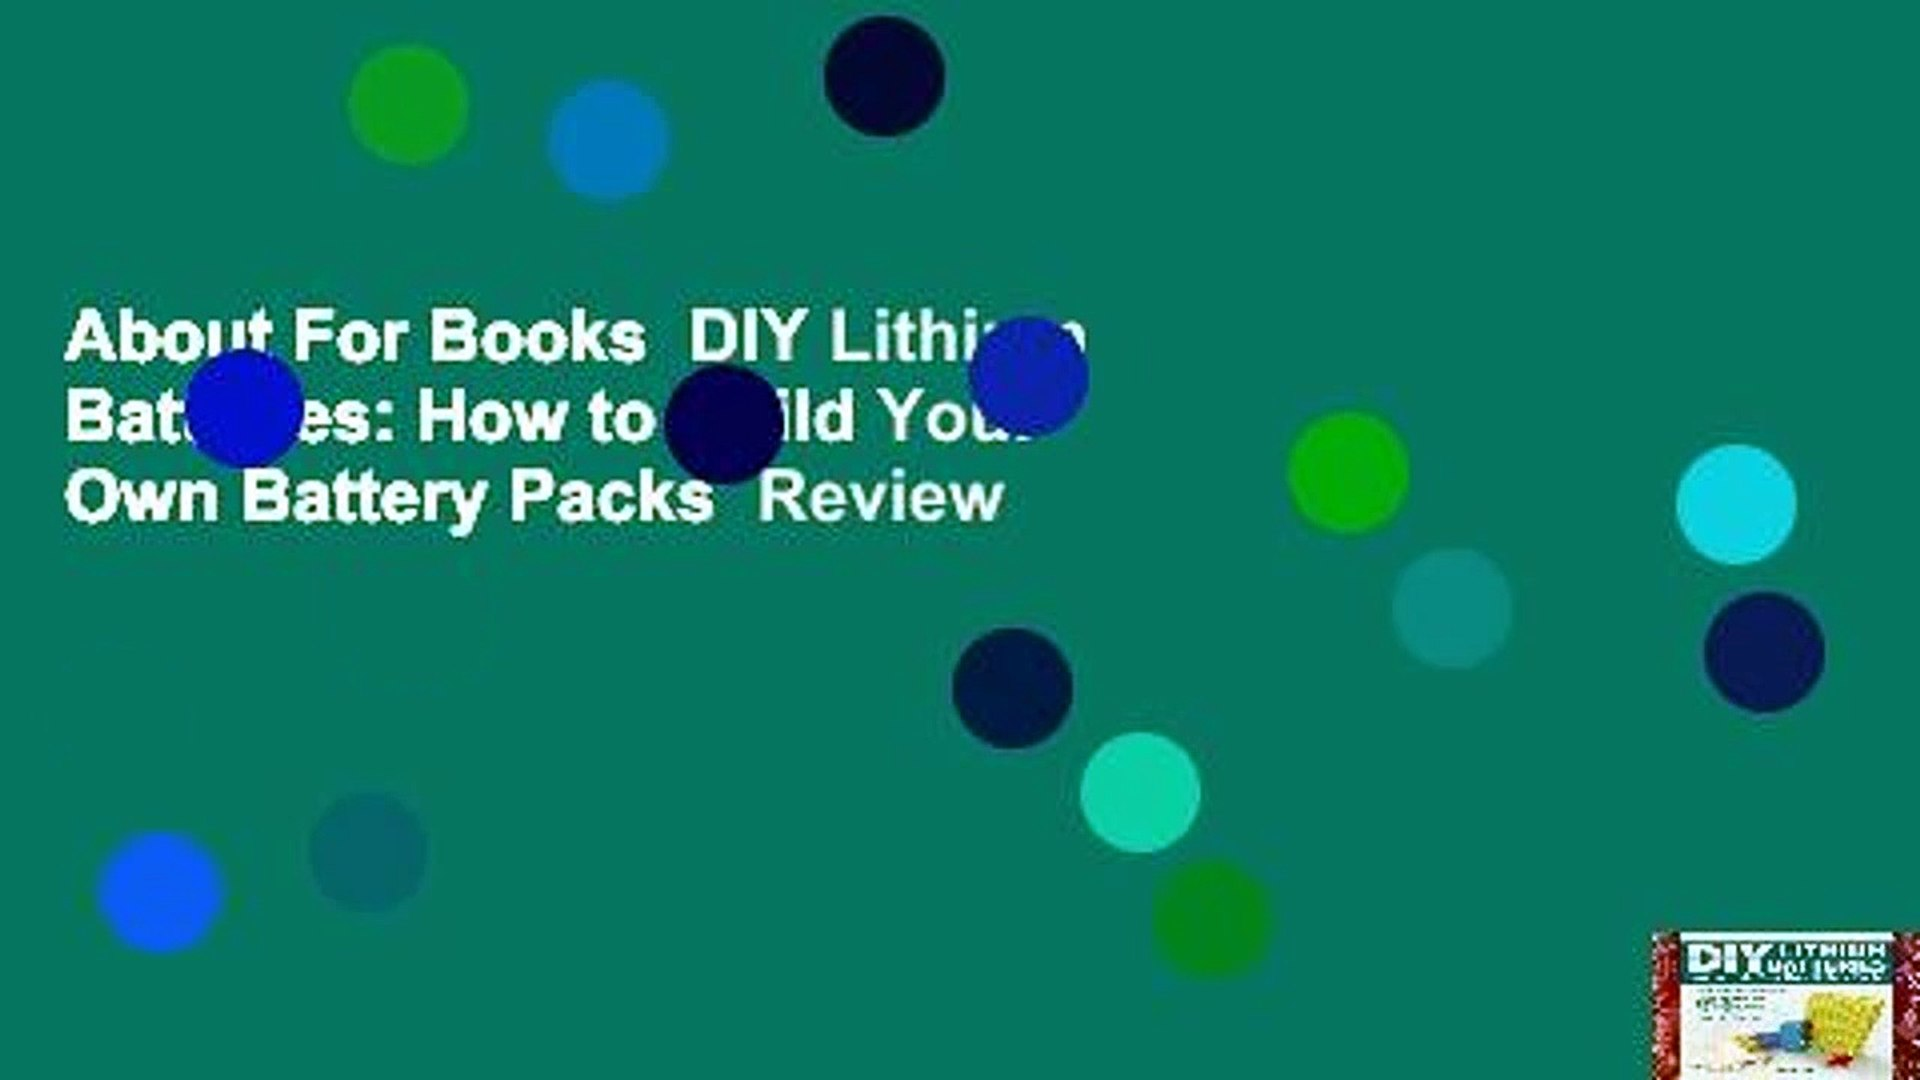 About For Books  DIY Lithium Batteries: How to Build Your Own Battery Packs  Review